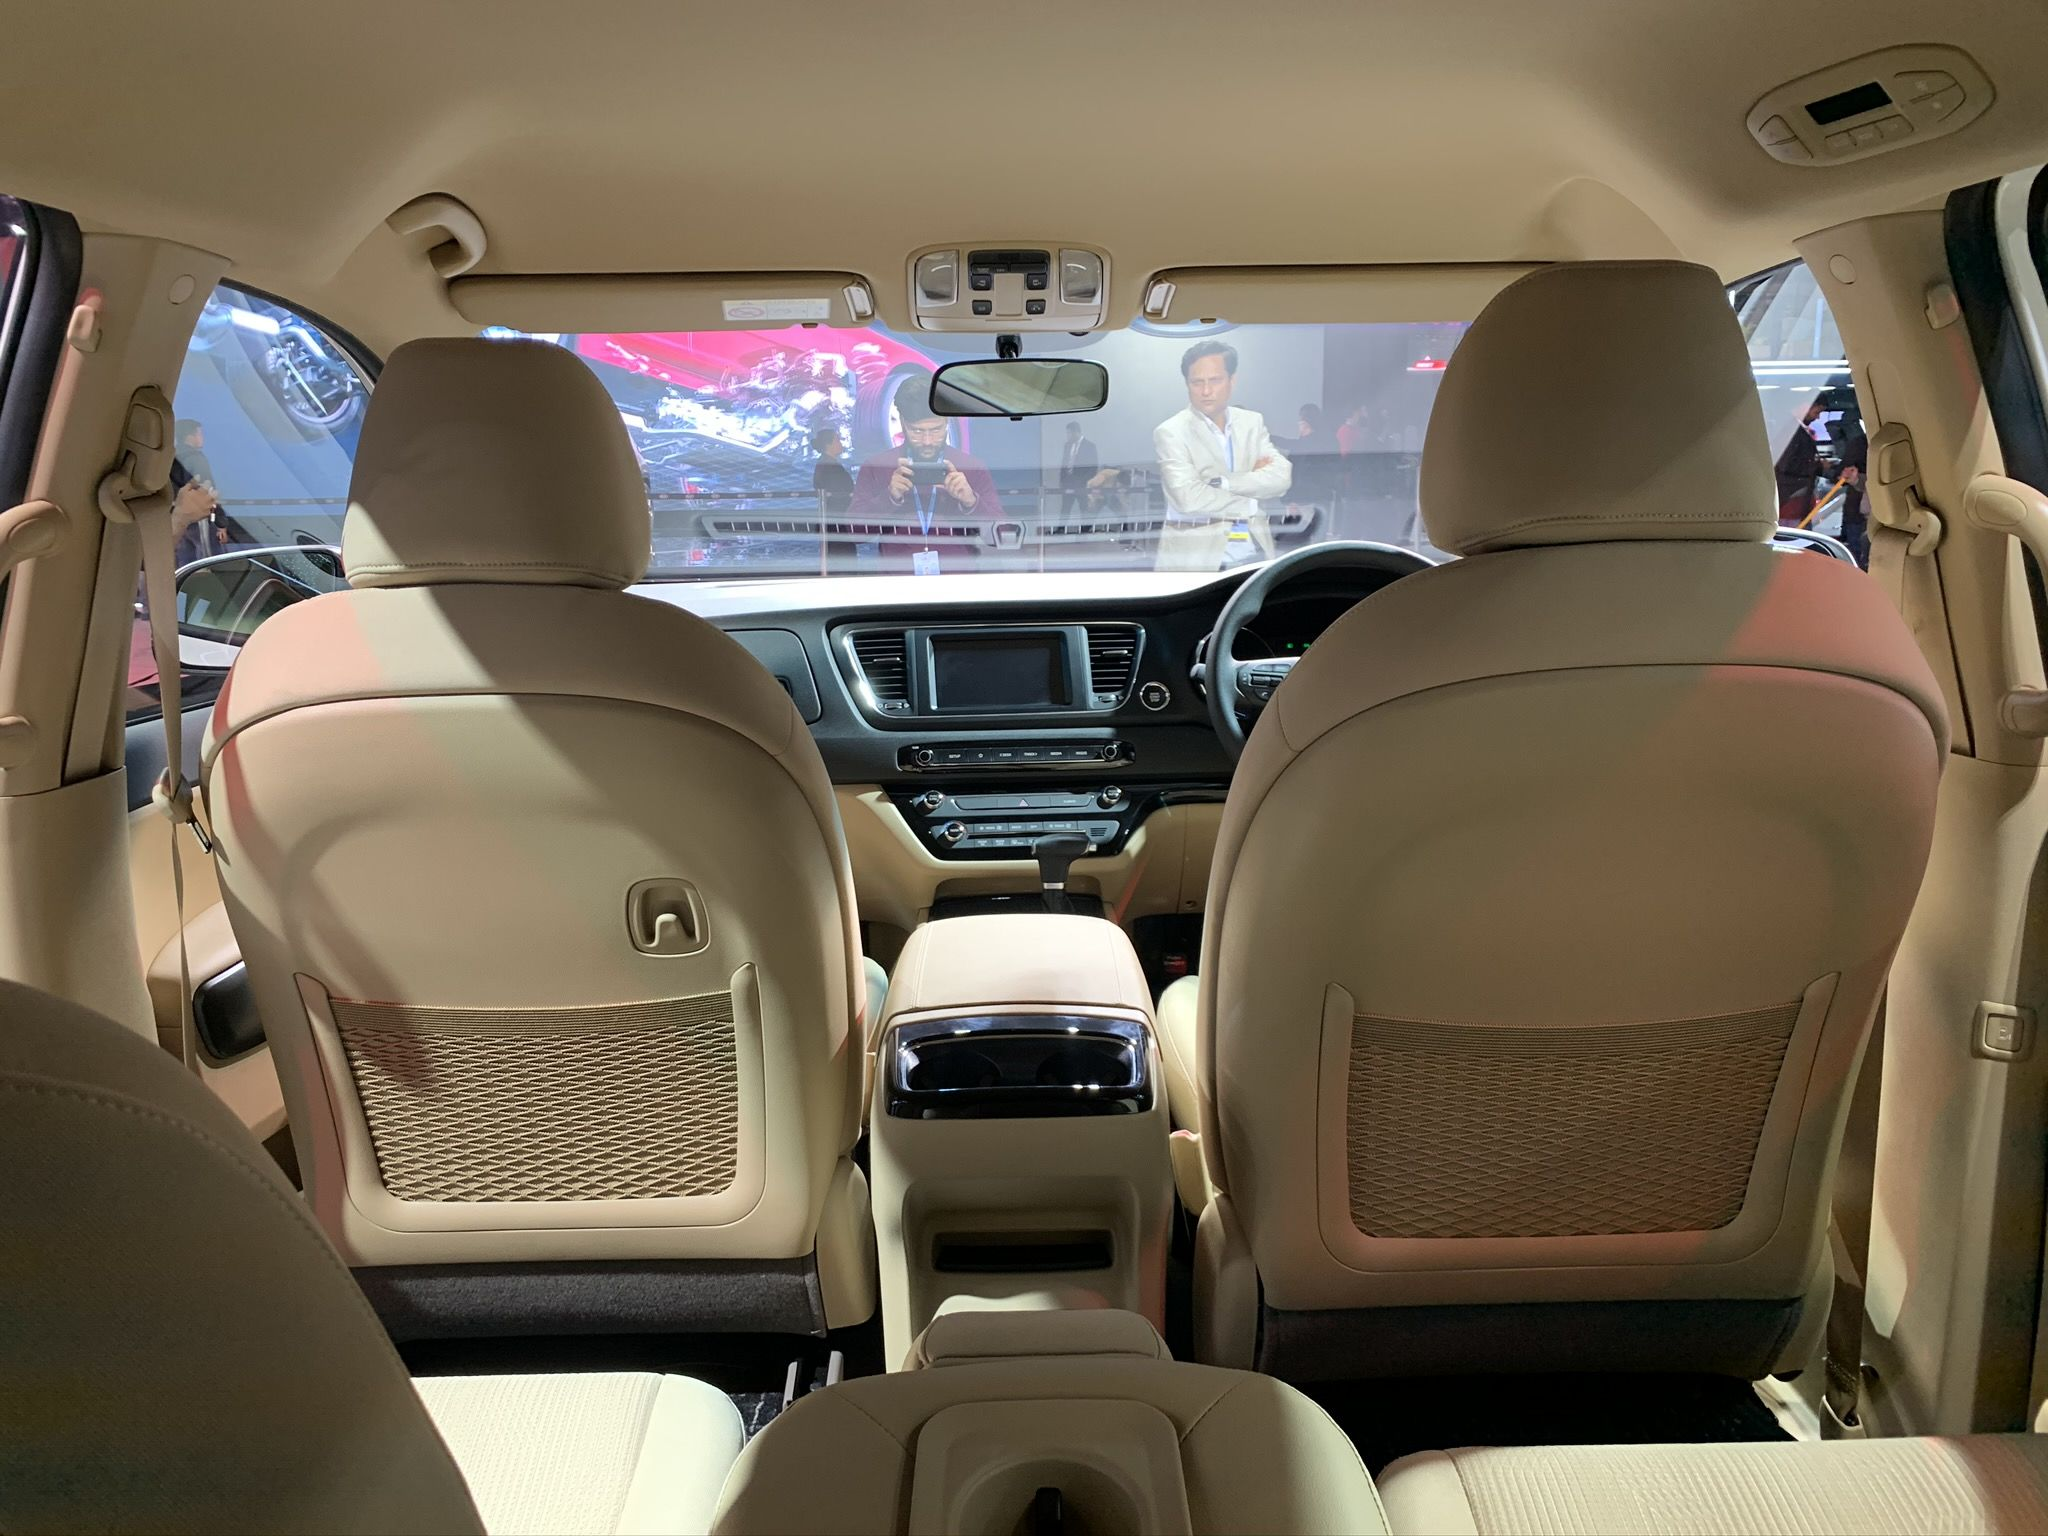 The car starts at a price of <span class='webrupee'>₹</span>24.95 lakh for a seven-seater variant (ex-showroom), called the Premium segment. It remains to be seen whether this price goes in favour of the South Korean carmaker, considering its rival - the Innova - starts at a much lower price of around <span class='webrupee'>₹</span>15 lakh (ex-showroom).